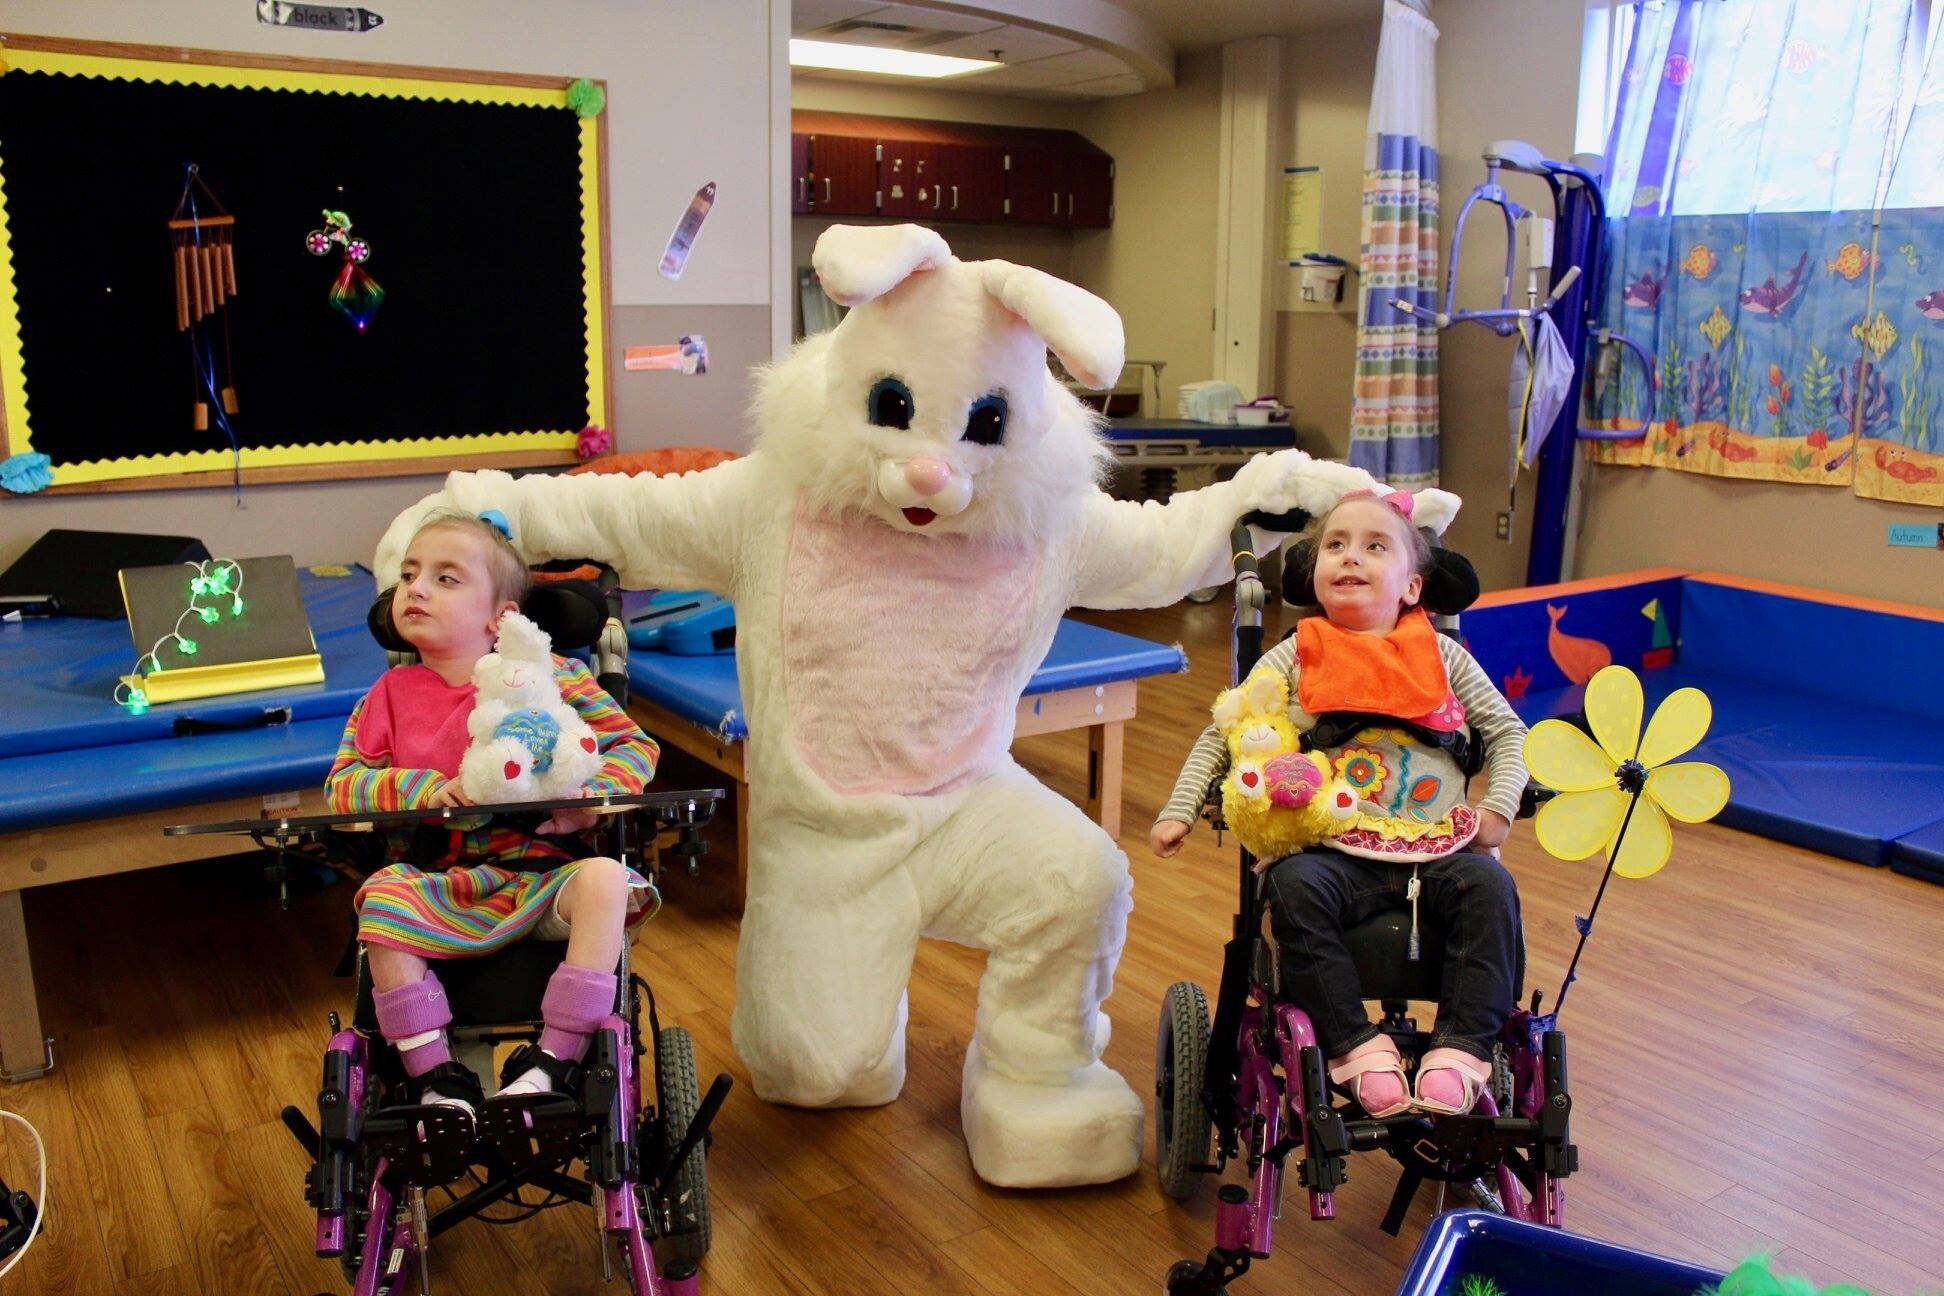 Photos: Norfolk Sheriff's Office brings the Easter Bunny to hospitalizedchildren